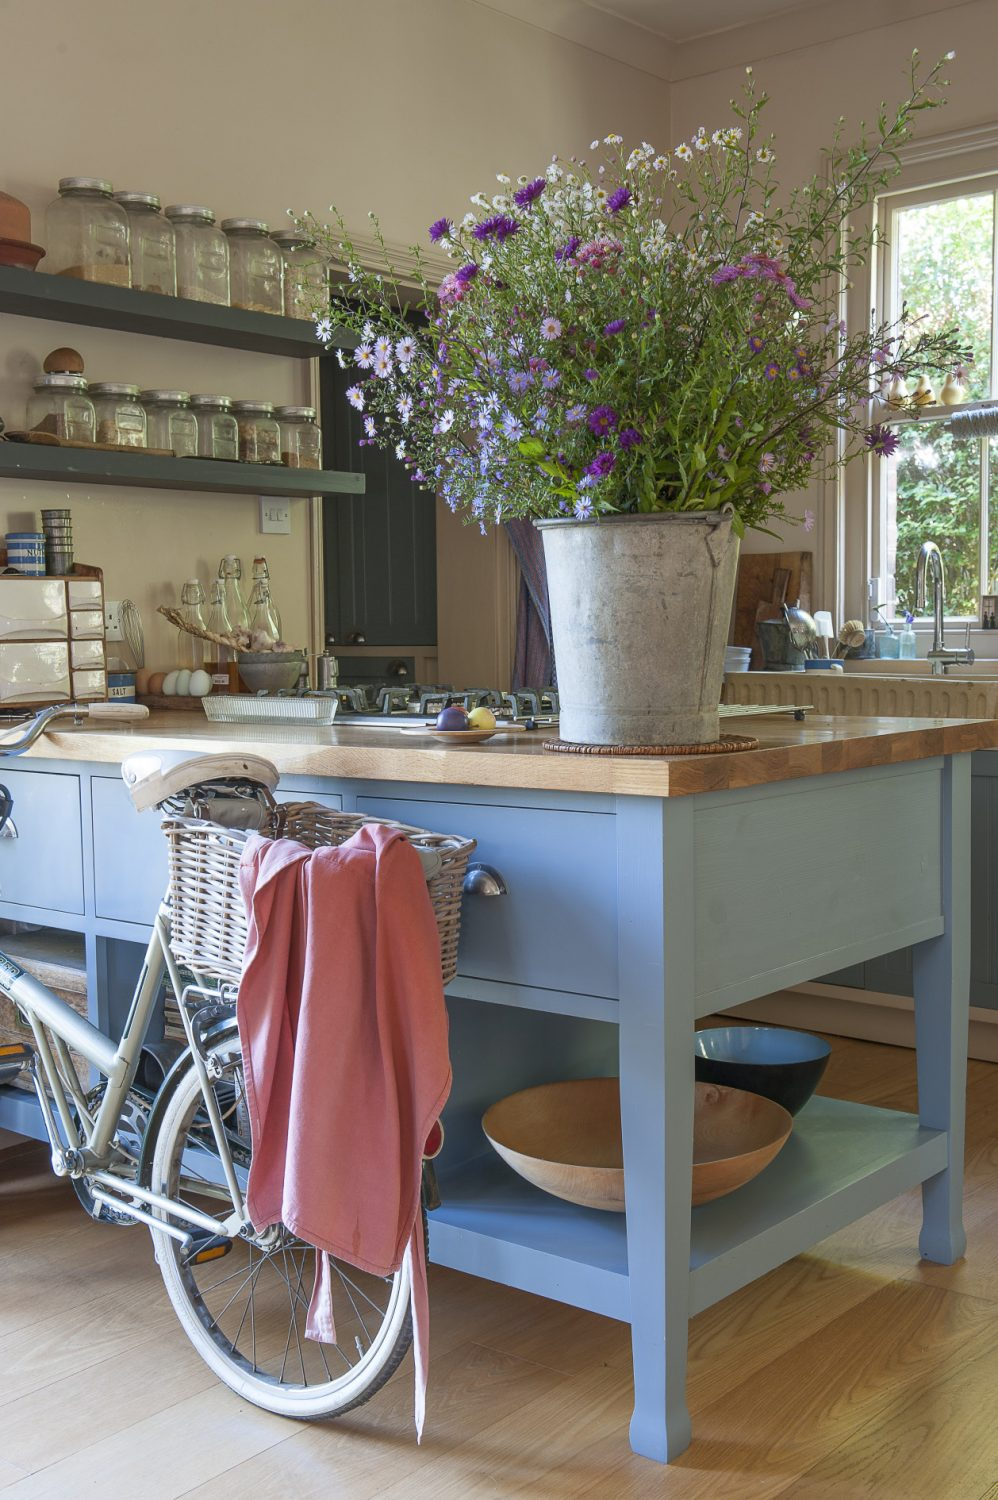 Francine's much-loved 1960s bicycle, which she bought locally, is perfect for nipping to the shops. It lives in the kitchen, propped up against a kitchen unit built by Francine's son Jacques